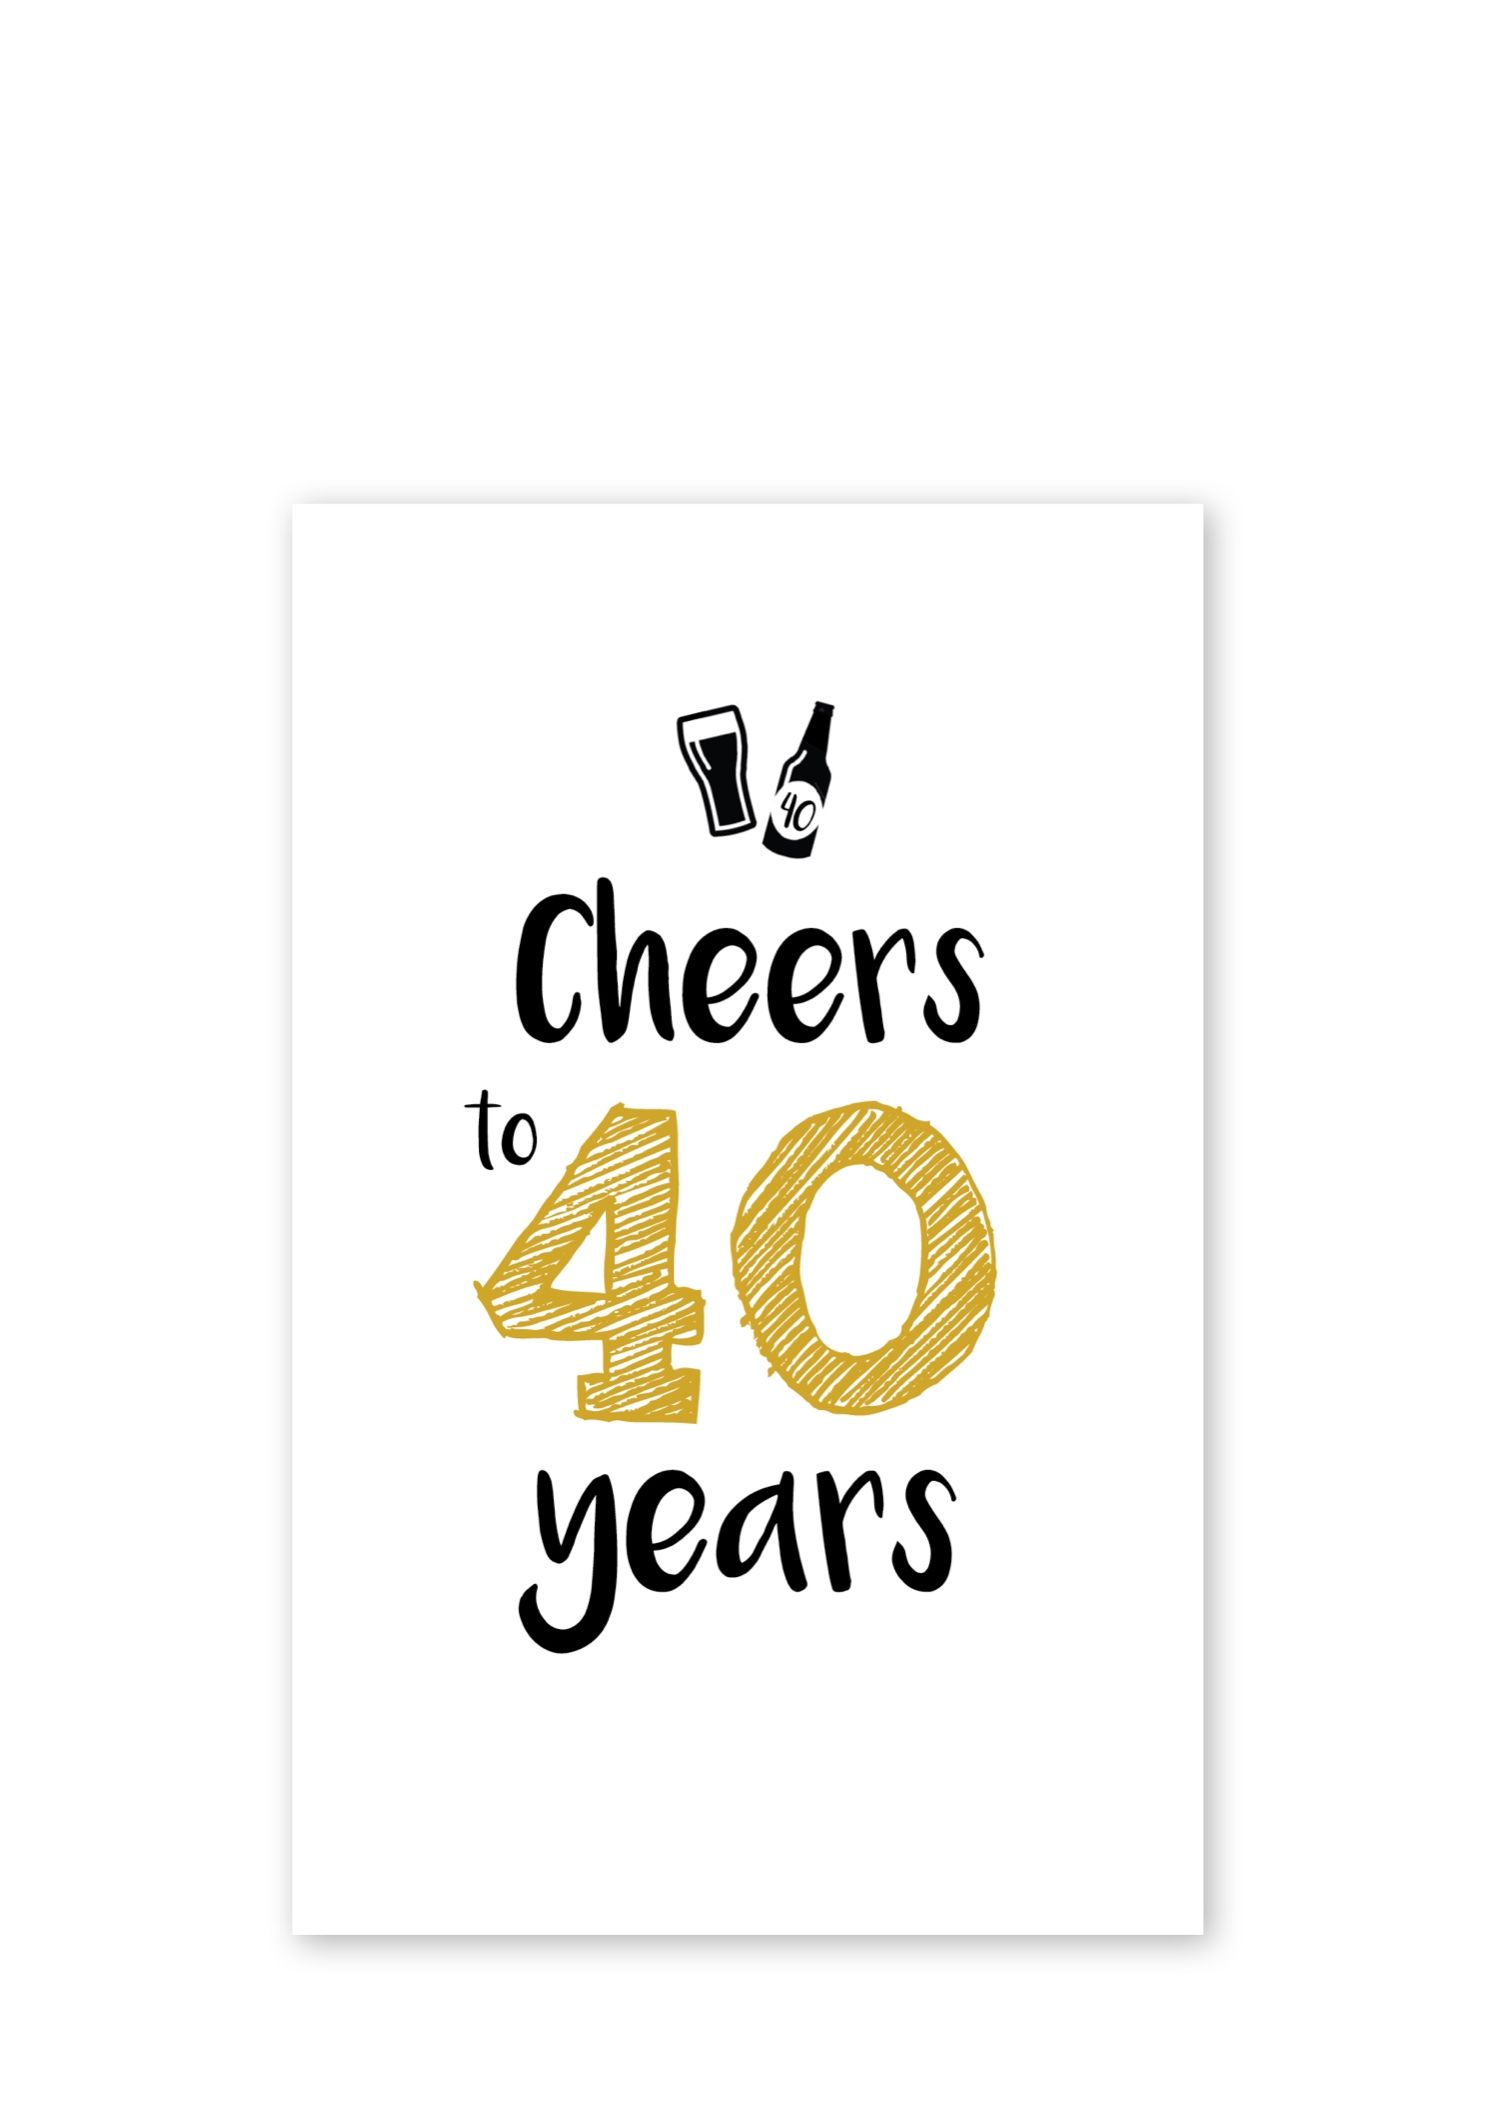 surpriseparty 40 jaar Uitnodiging surprise party 40 jaar | Bujo fonts | Pinterest  surpriseparty 40 jaar